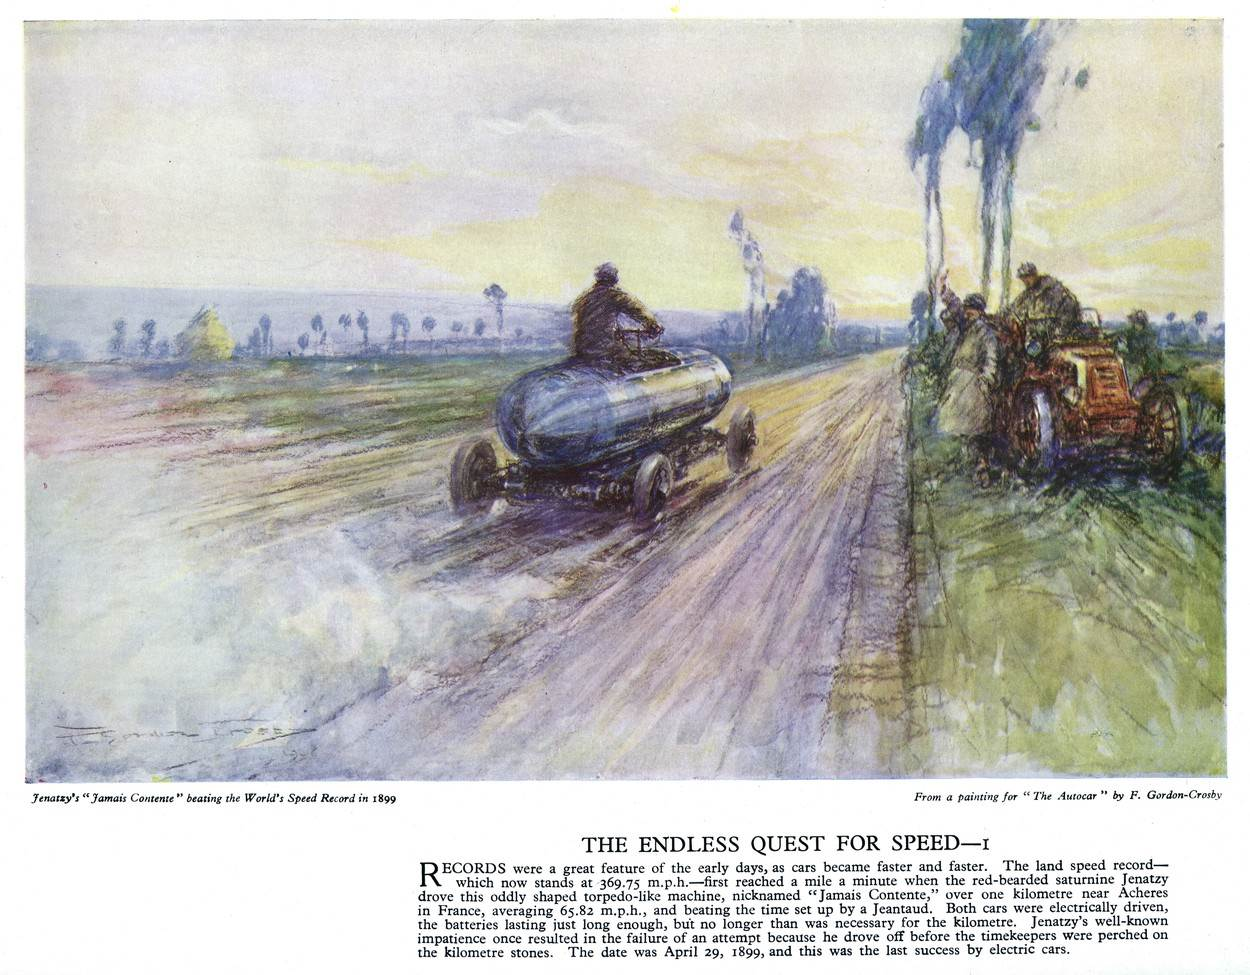 transport;motoring;motor;car;vehicle;frederick;gordon;crosby;speed;autocar;poster;camille;beating;beat;beater;world;record;acheres;france;65;mph;1899;1890s;jenatzy;road;tractor;waving;men;pioneer;jamais;contente;never;content;history;historical